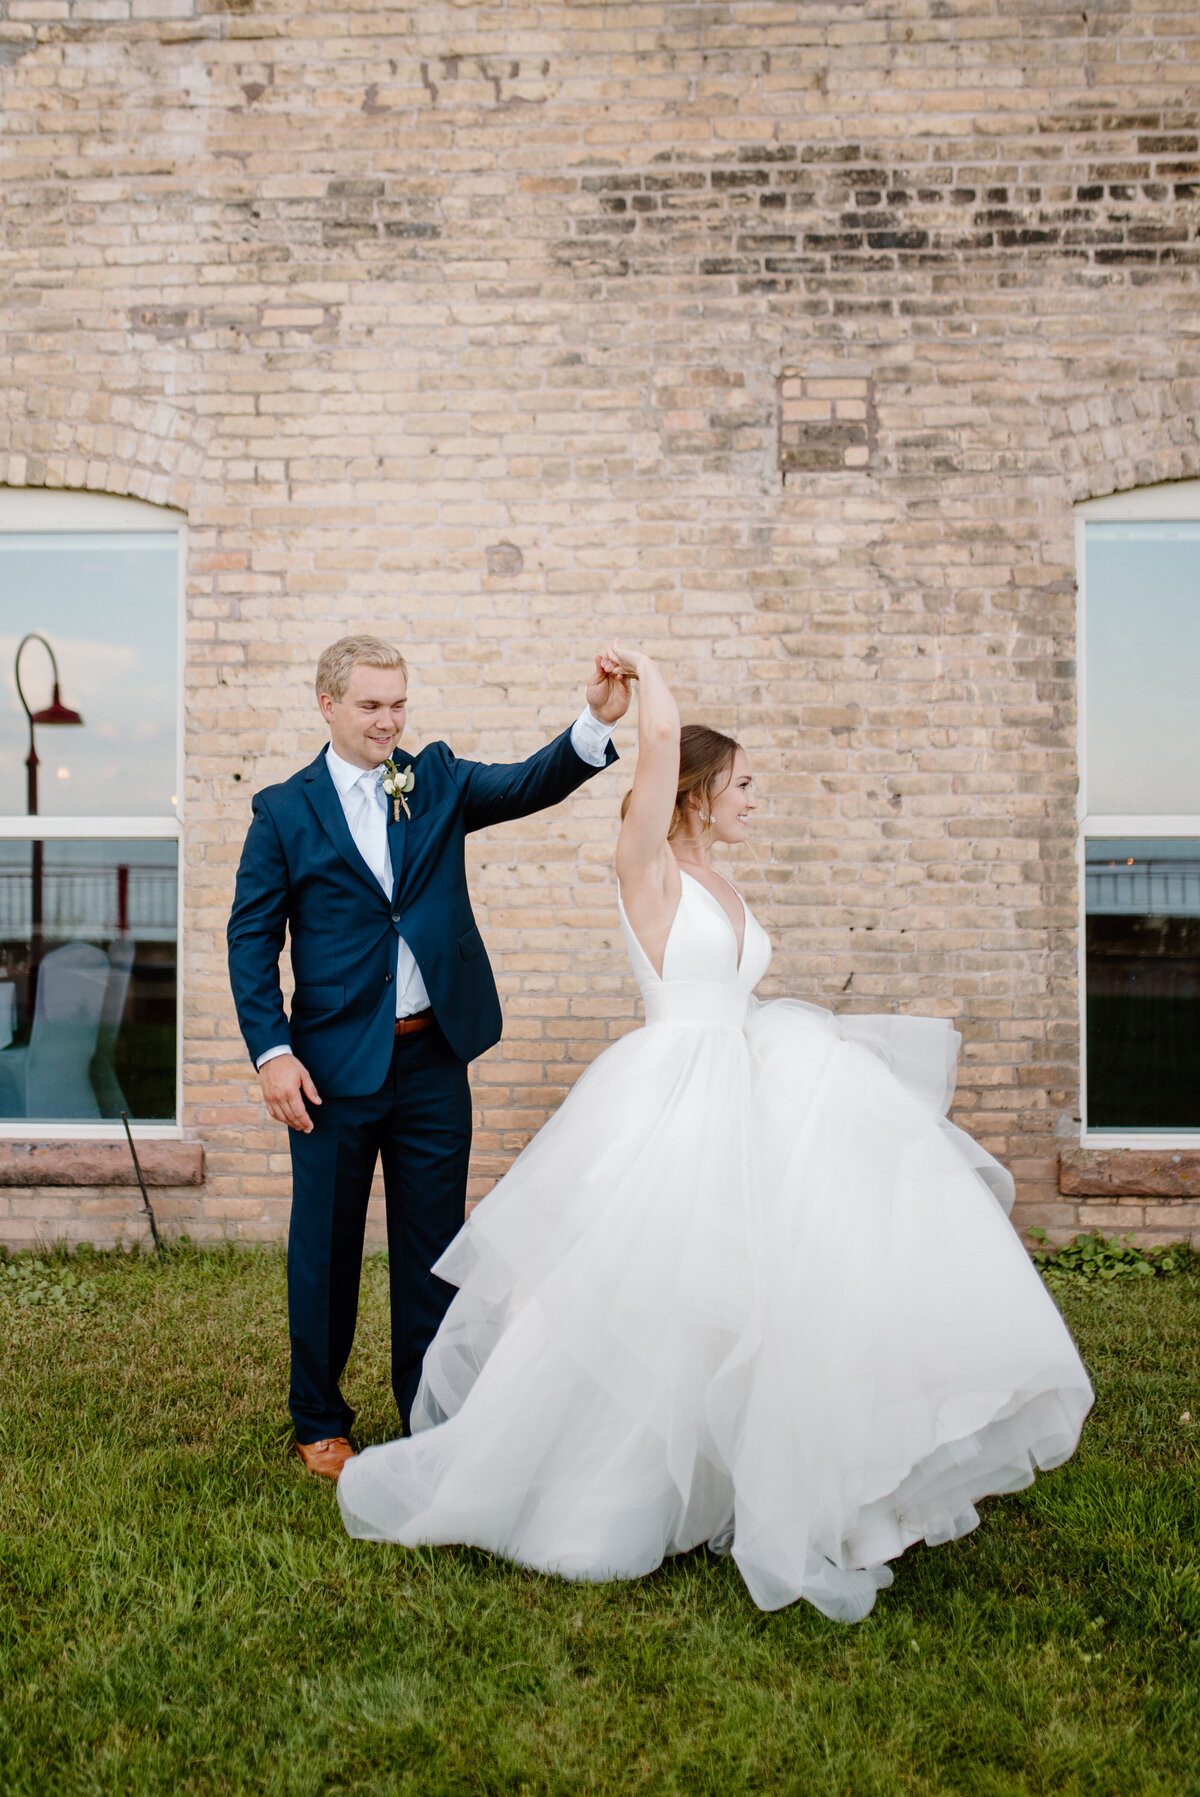 kylee-brian-wedding-bride-and-groom-photos-13